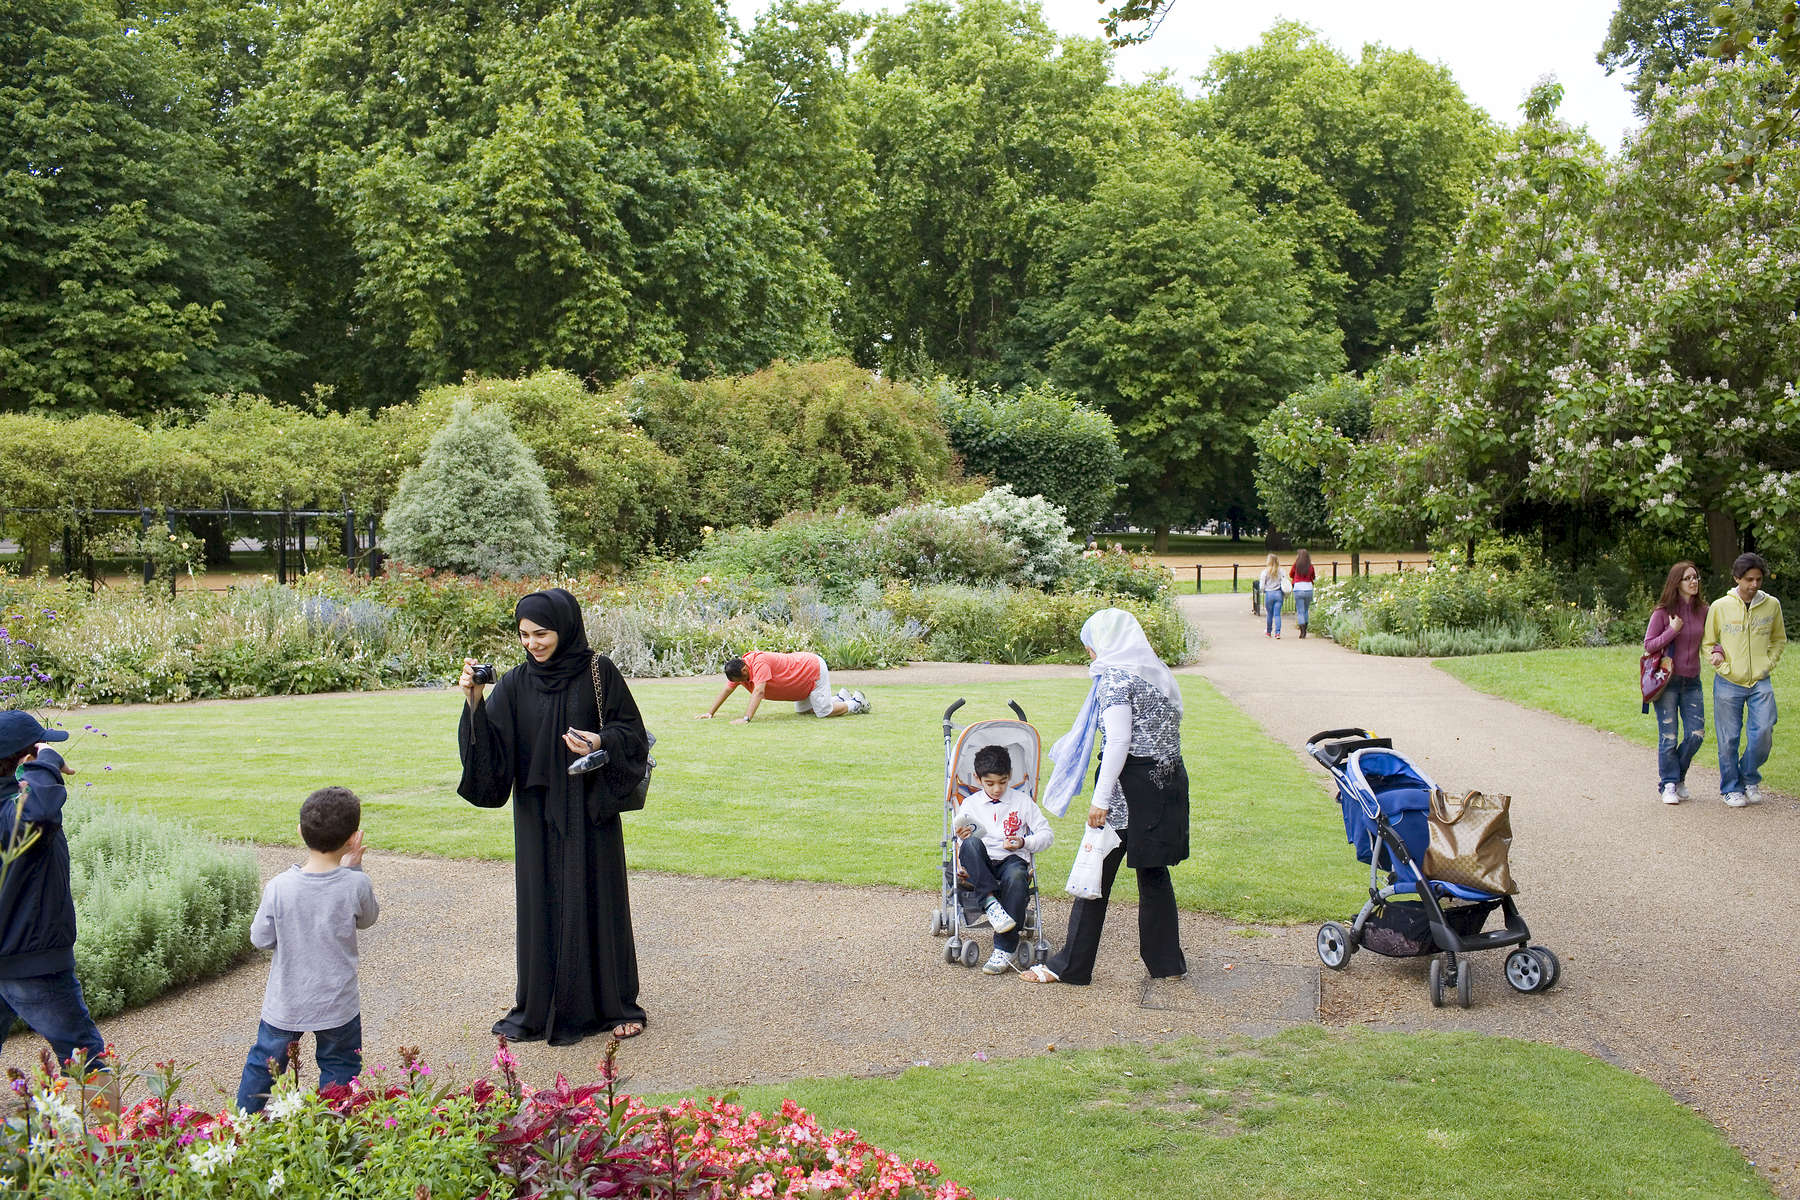 An Arab woman takes photographs in the flower garden at Hyde Park.Arabs have been visiting London for centuries and around 300,000 Arabs have chosen to make the capital their home and a further half a million throughout the UK. The number swells significantly from visitors during the summer. Saudi Arabians spend the most on property in London choosing Belgravia, Kenington, Knightsbridge and Holland Park. Arab culture continues to increase in visibility throughout the capital as integration into this most transient of city's continues.©Peter Dench/Reportage by Getty Images